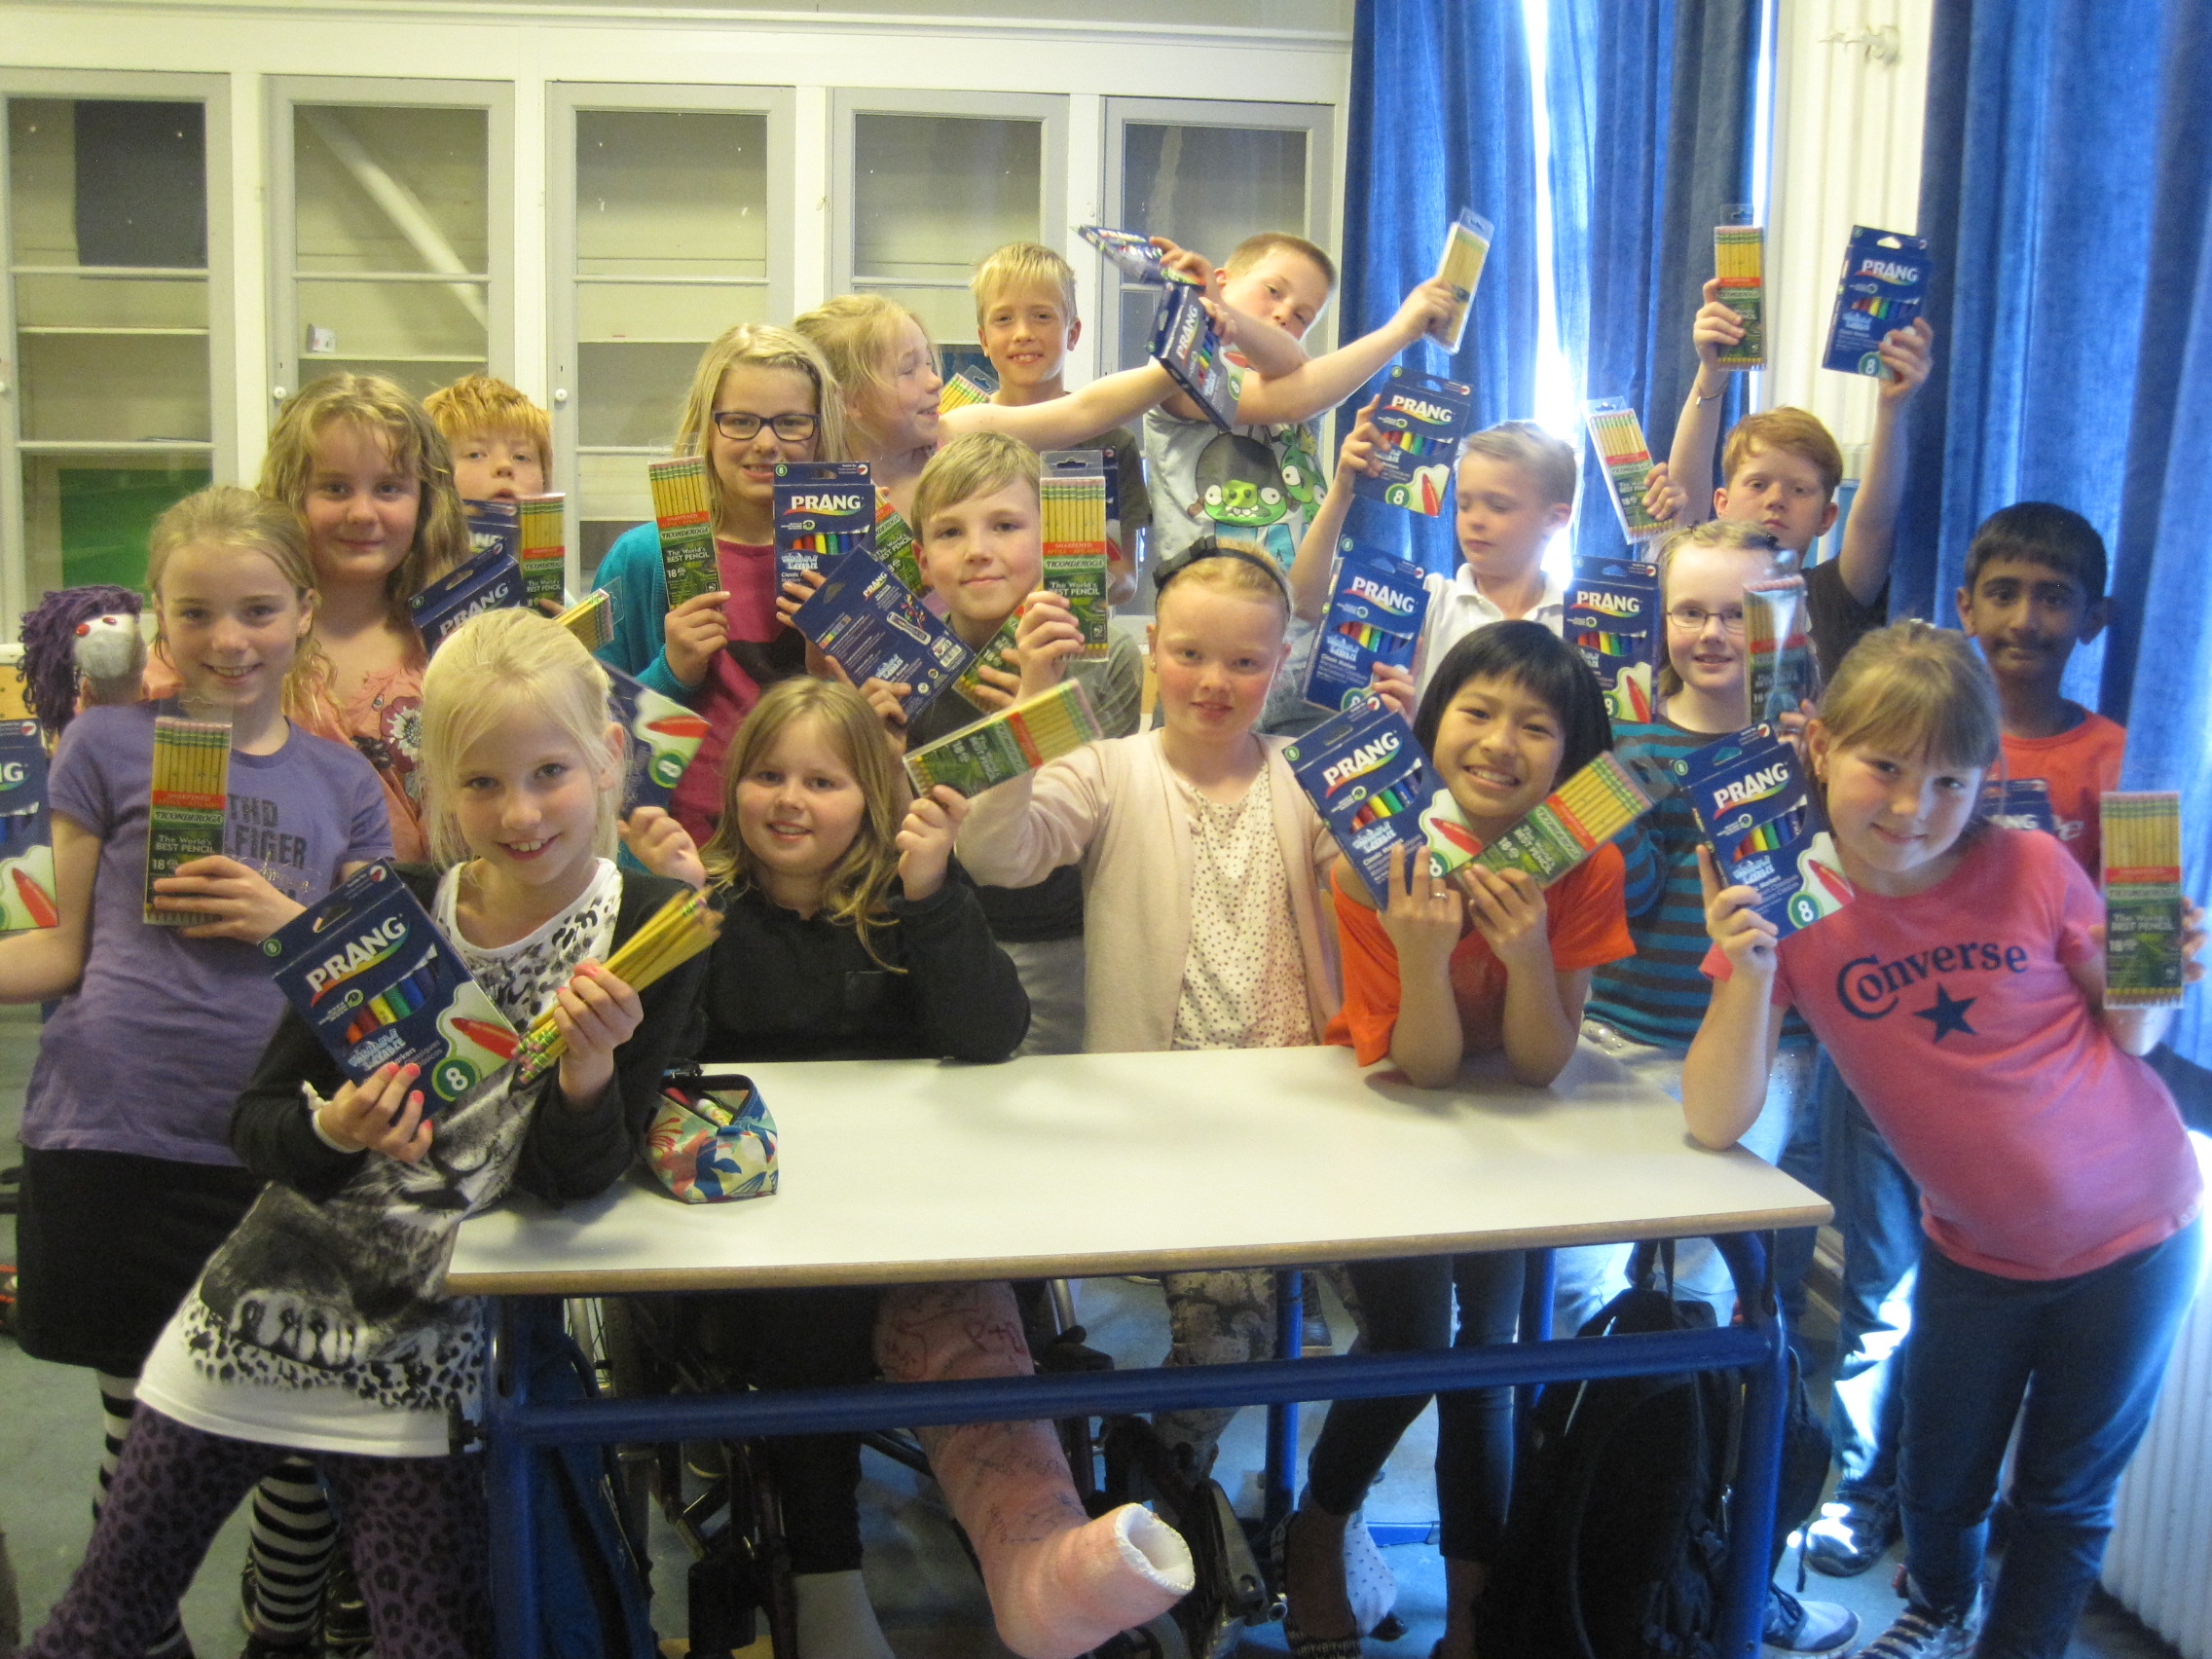 Dixon Ticonderoga donate pencils to a class in Denmark